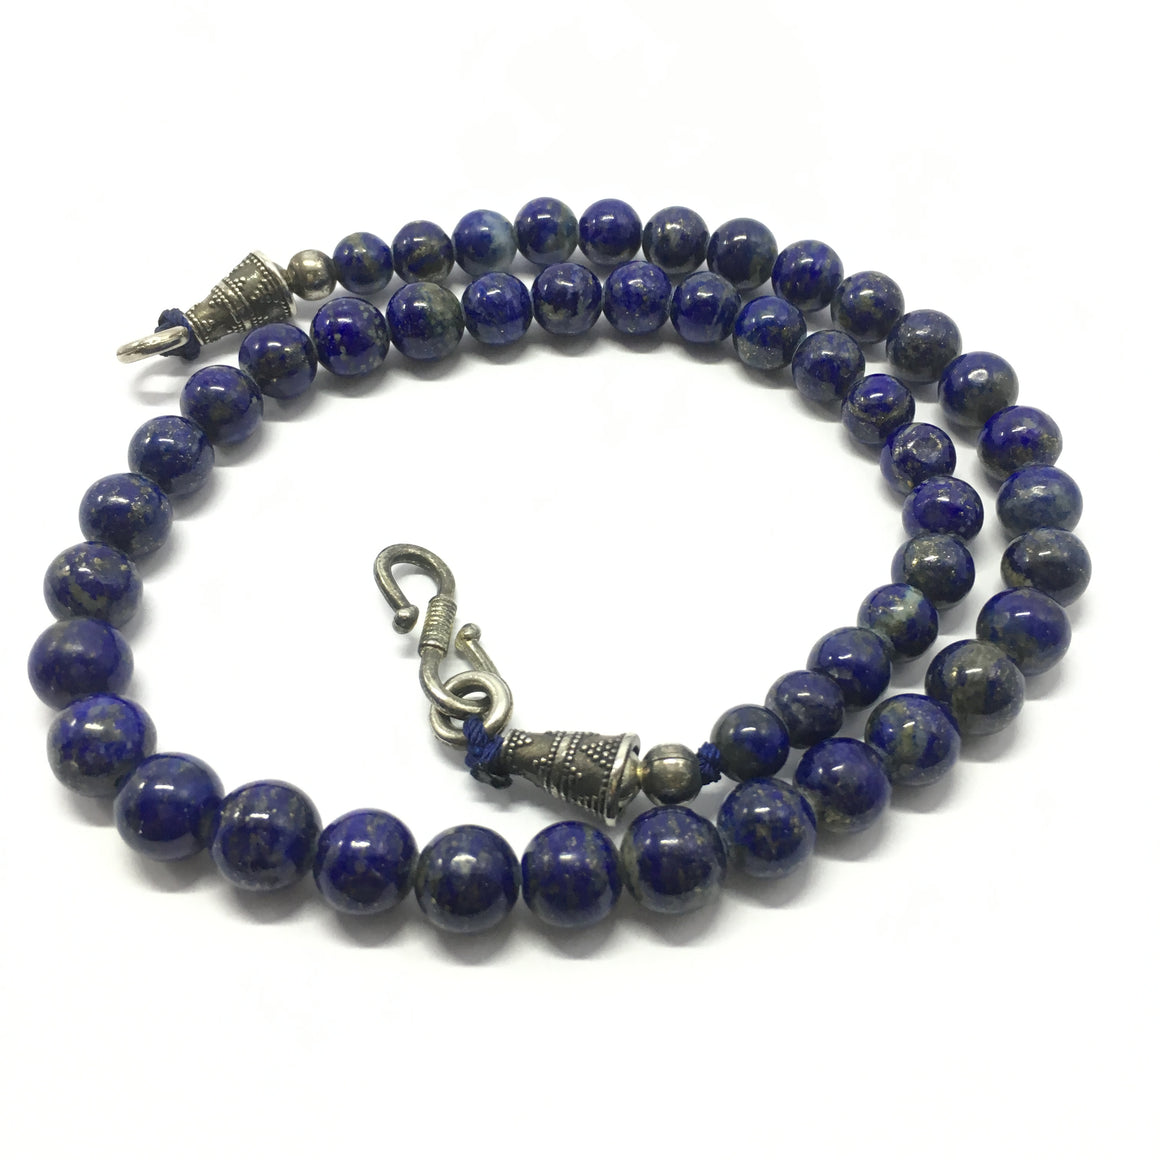 265.0 Carat, 48 Round Beads Lapis Lazuli Necklace With Metal Lock